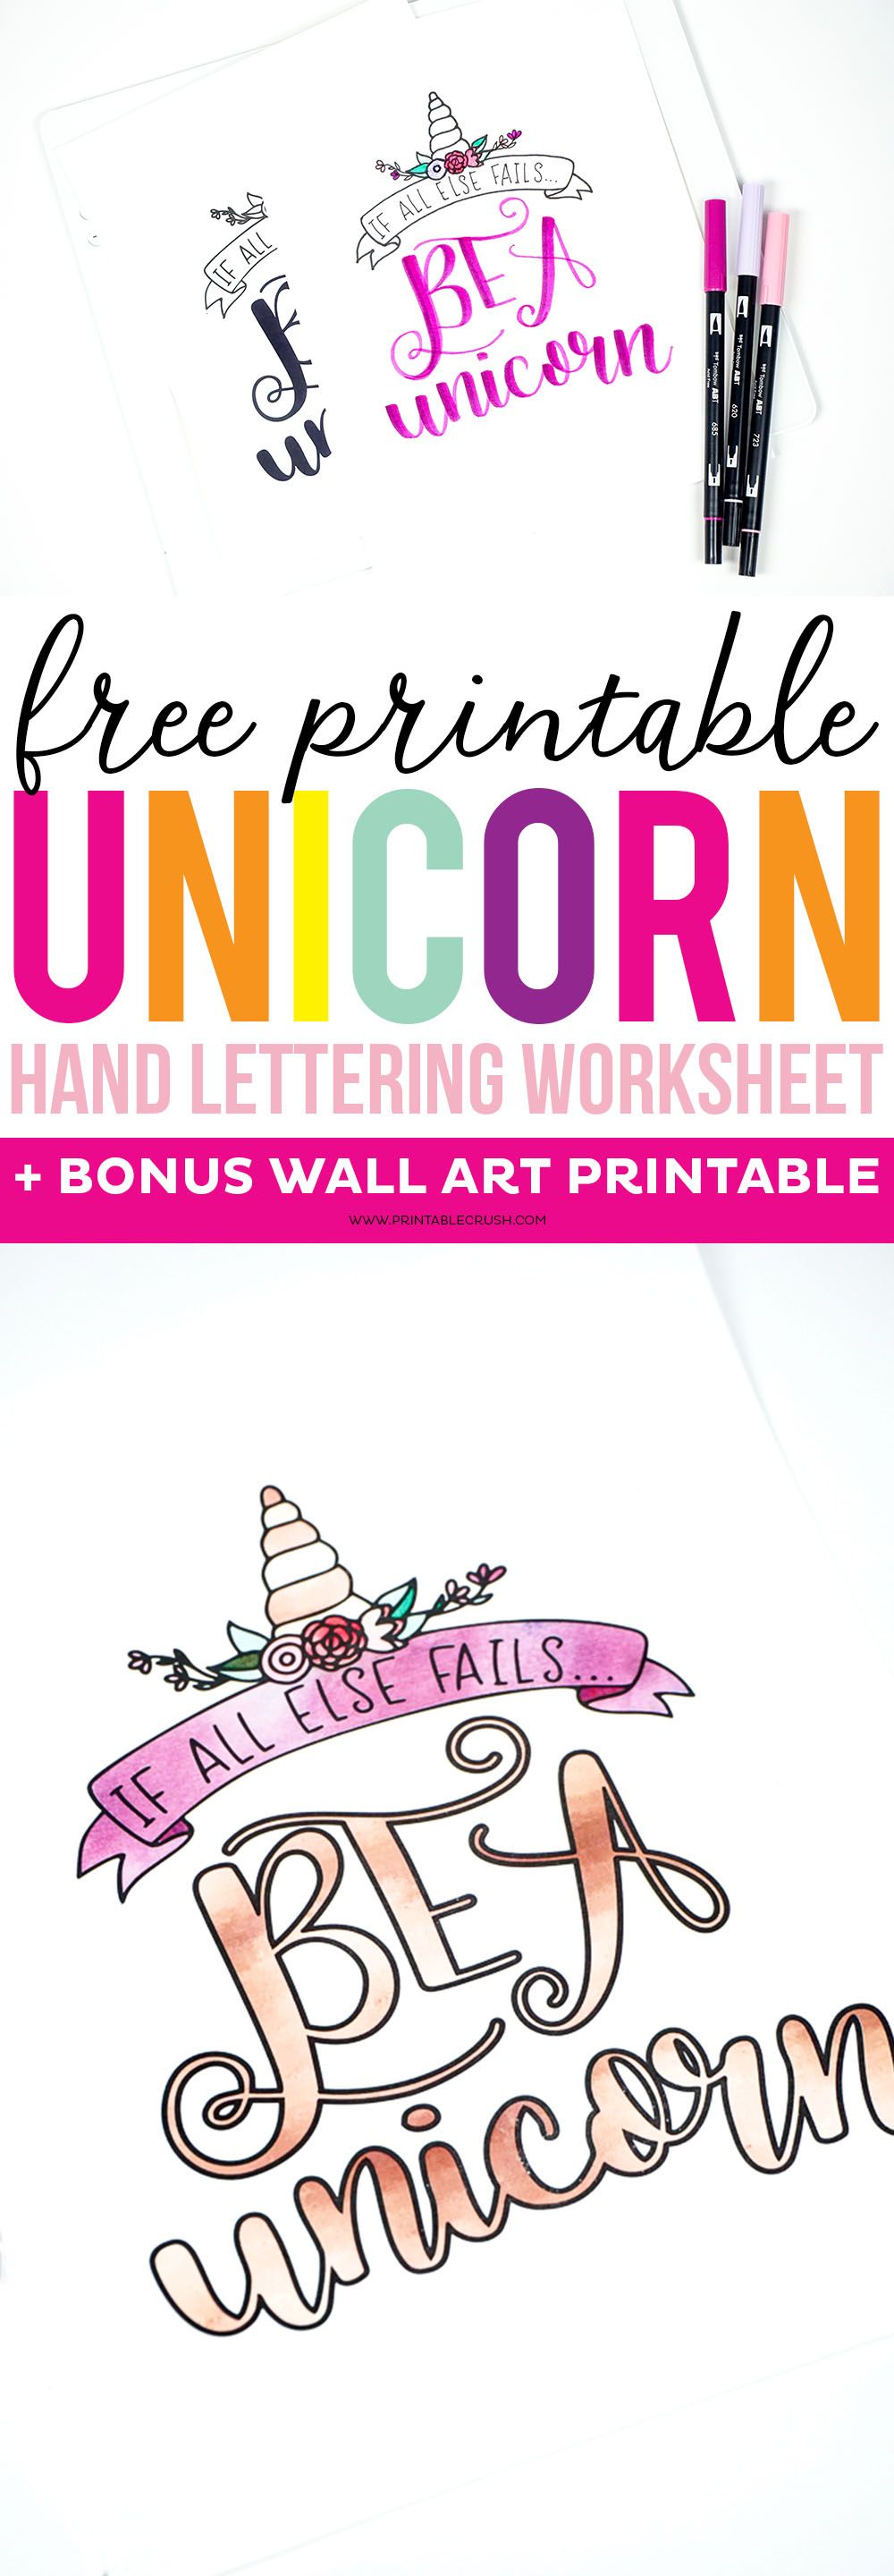 FREE Printable Unicorn Hand Lettering Worksheet and Wall Art ...